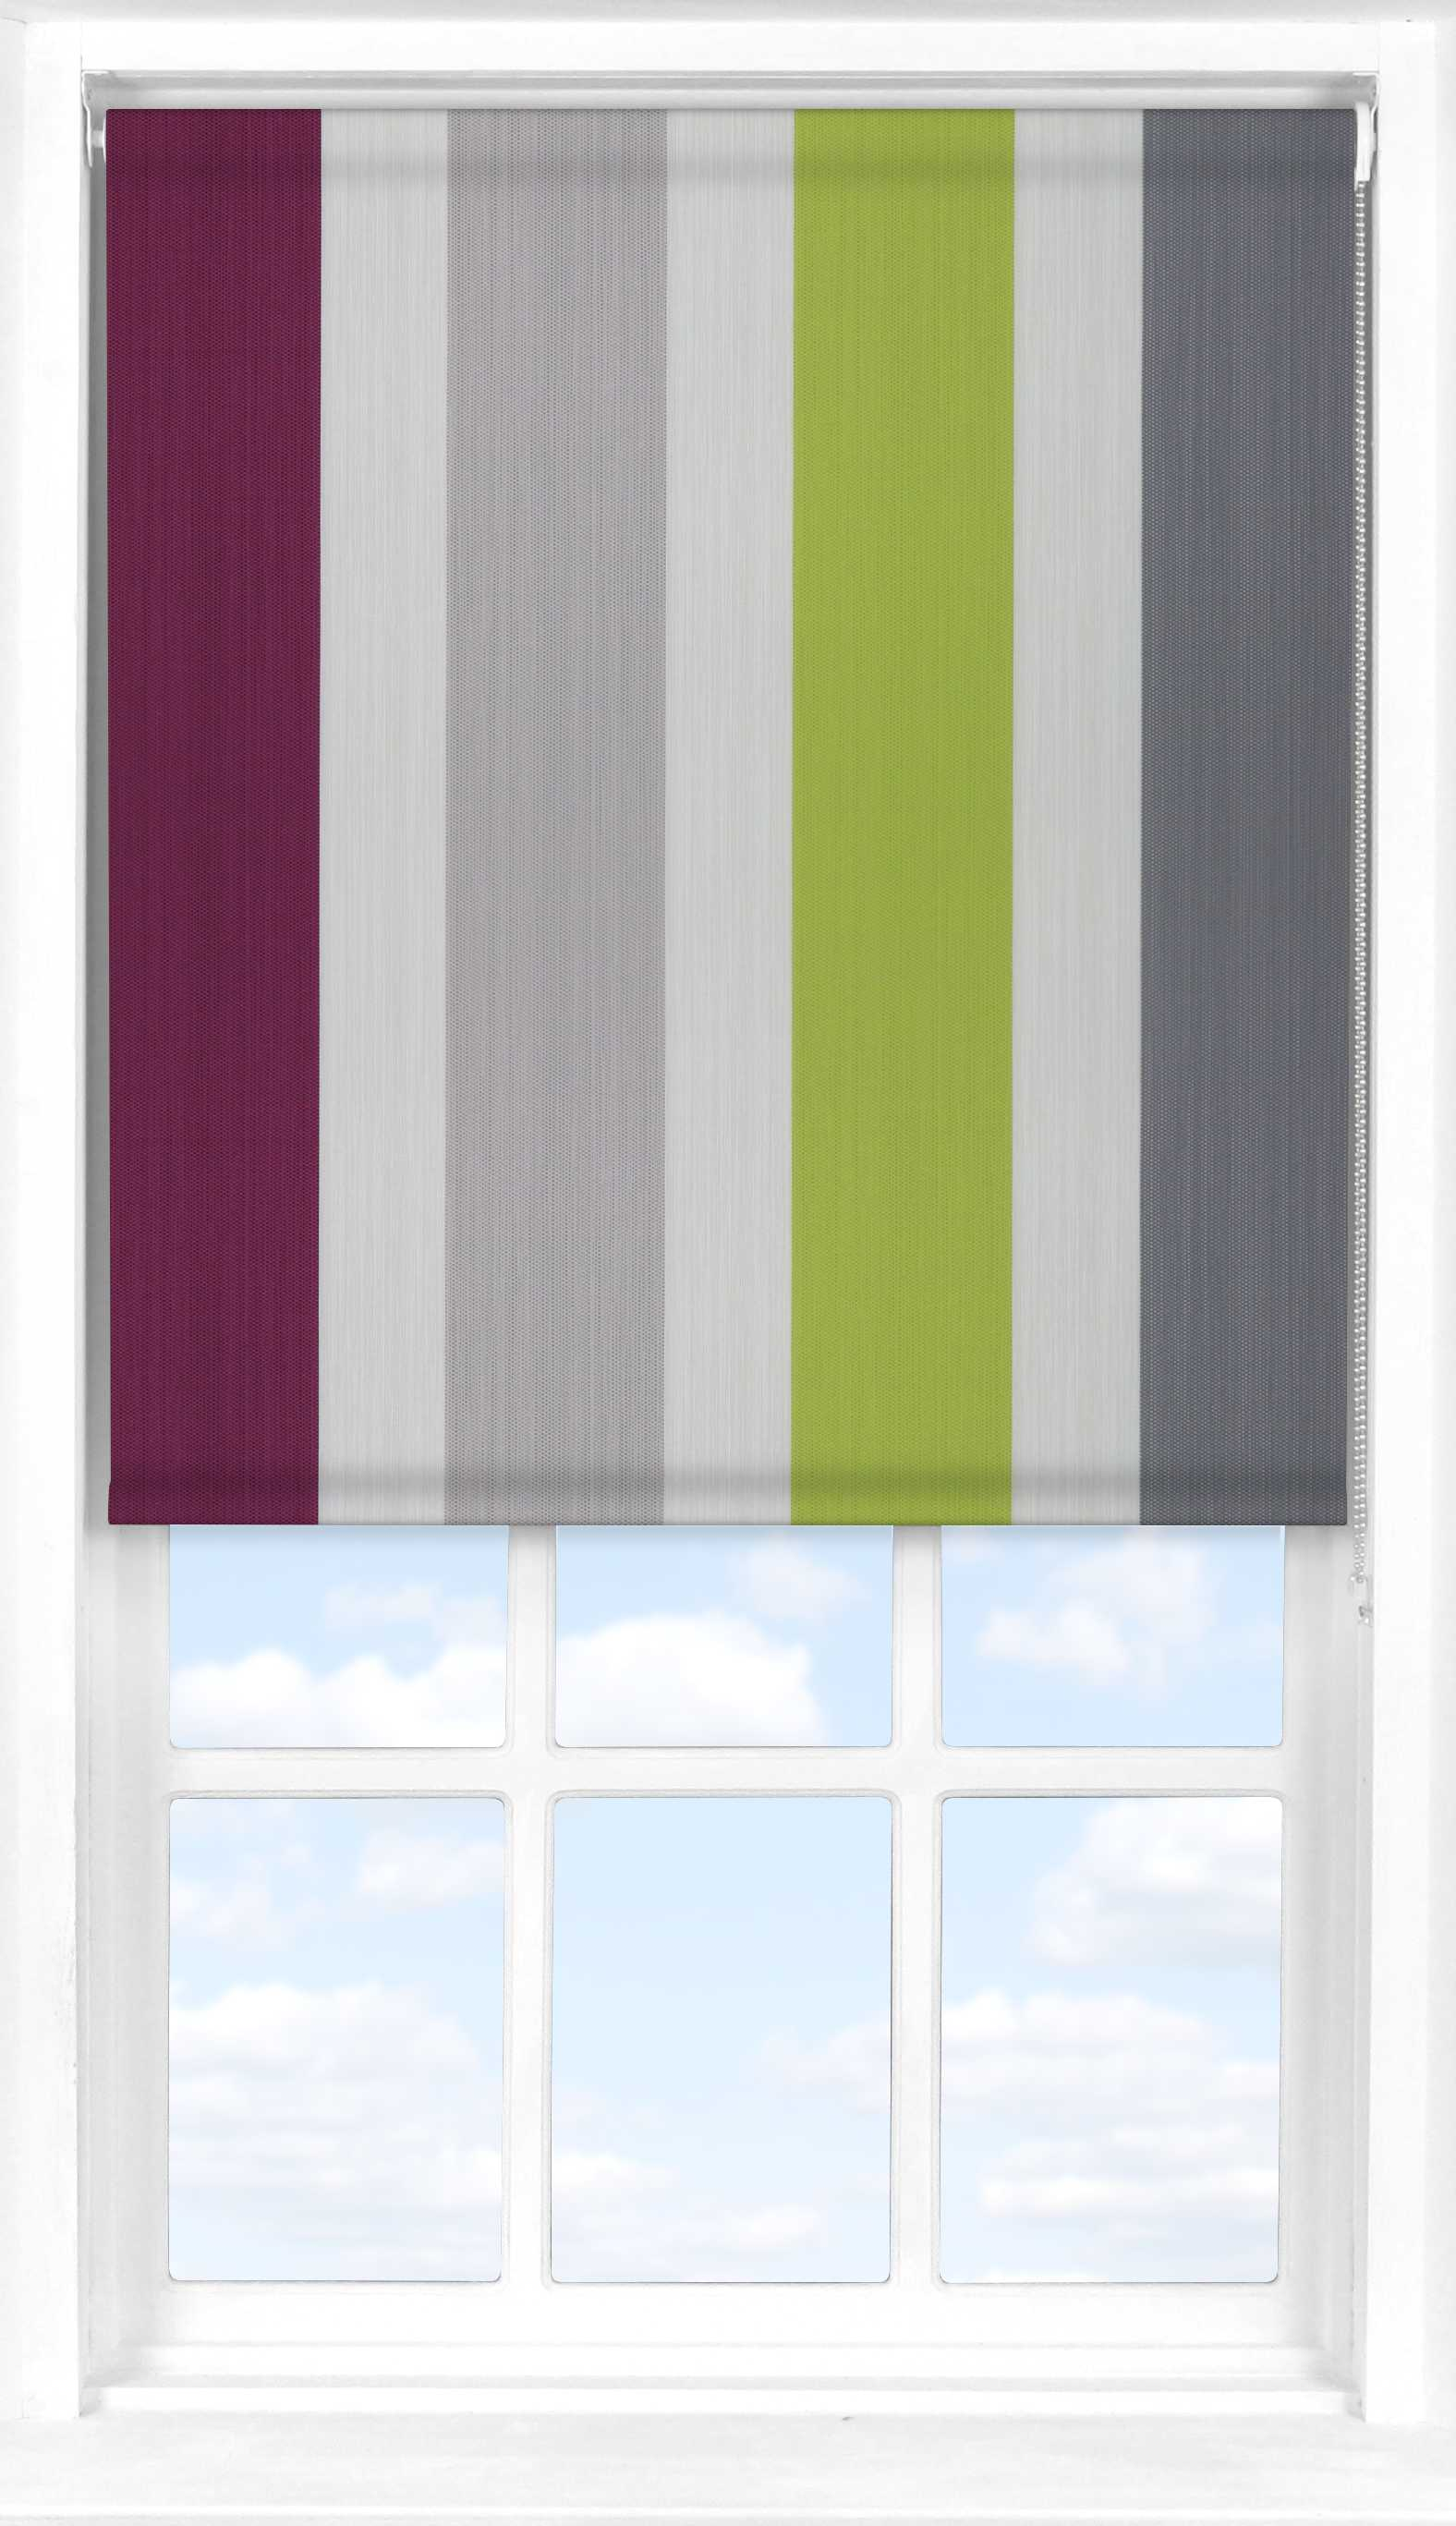 Motorised Roller Blind in Kensington Amethyst Translucent